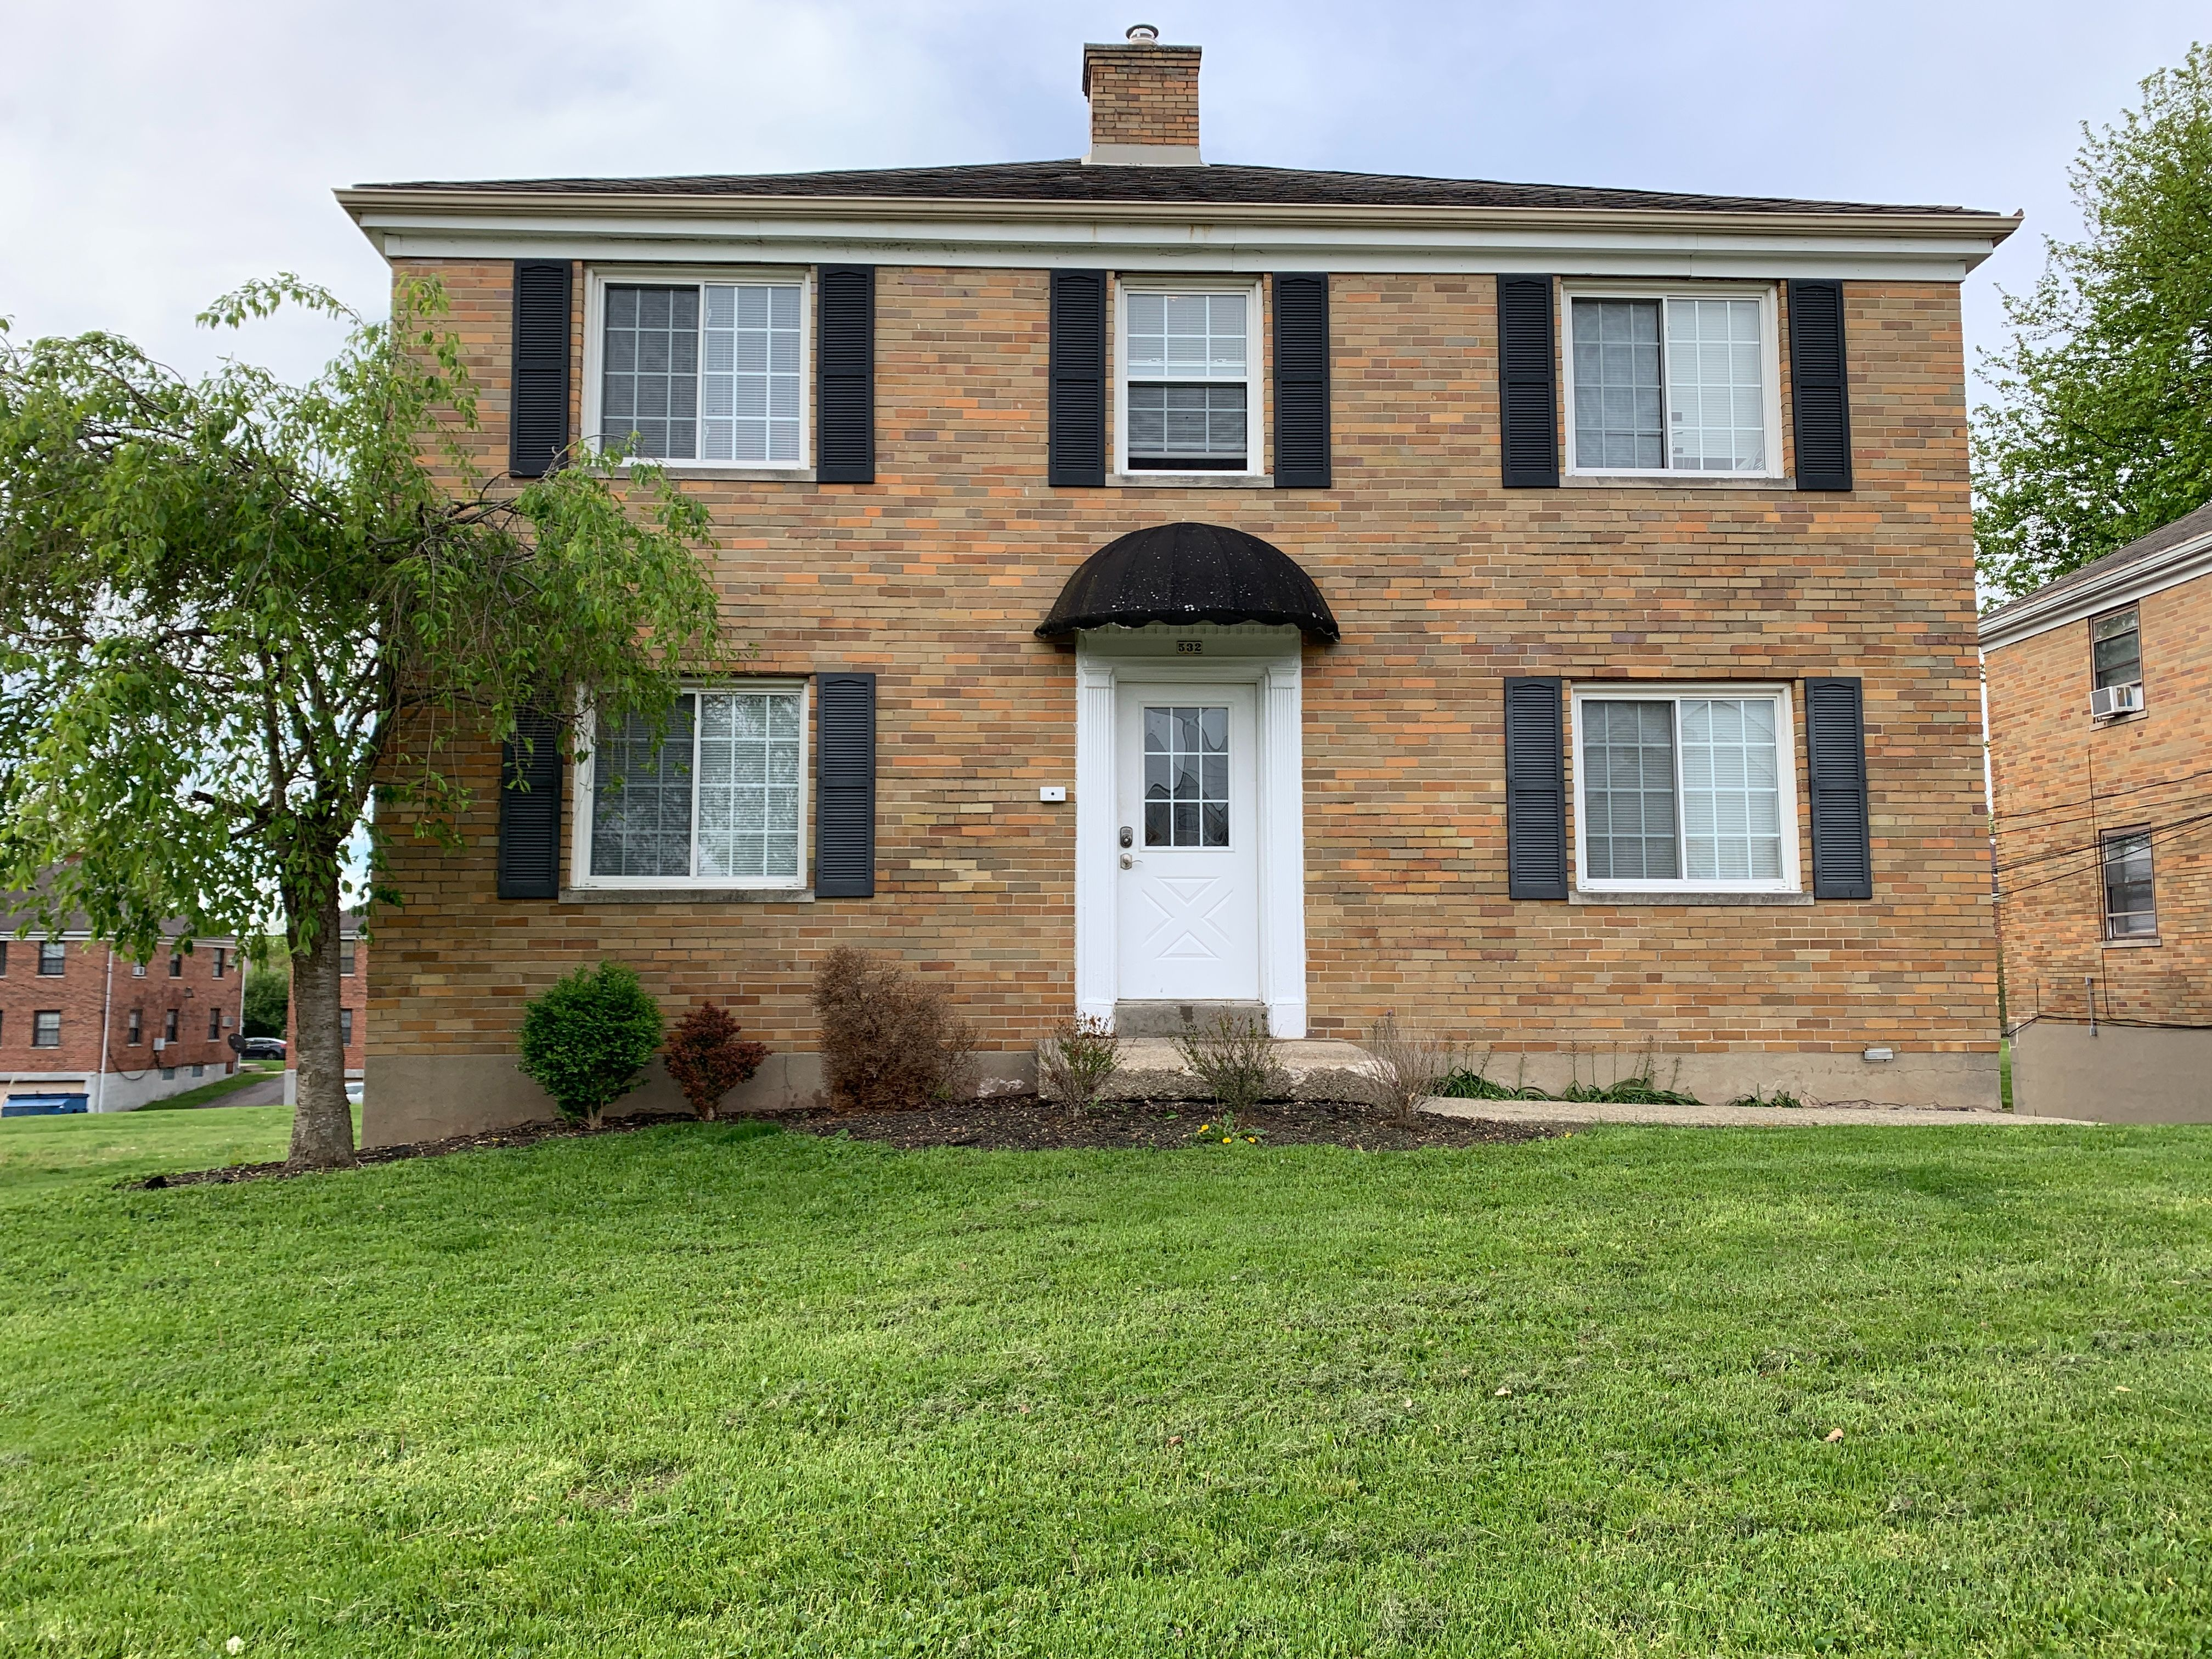 532 Aberdeen Ave, Kettering, OH